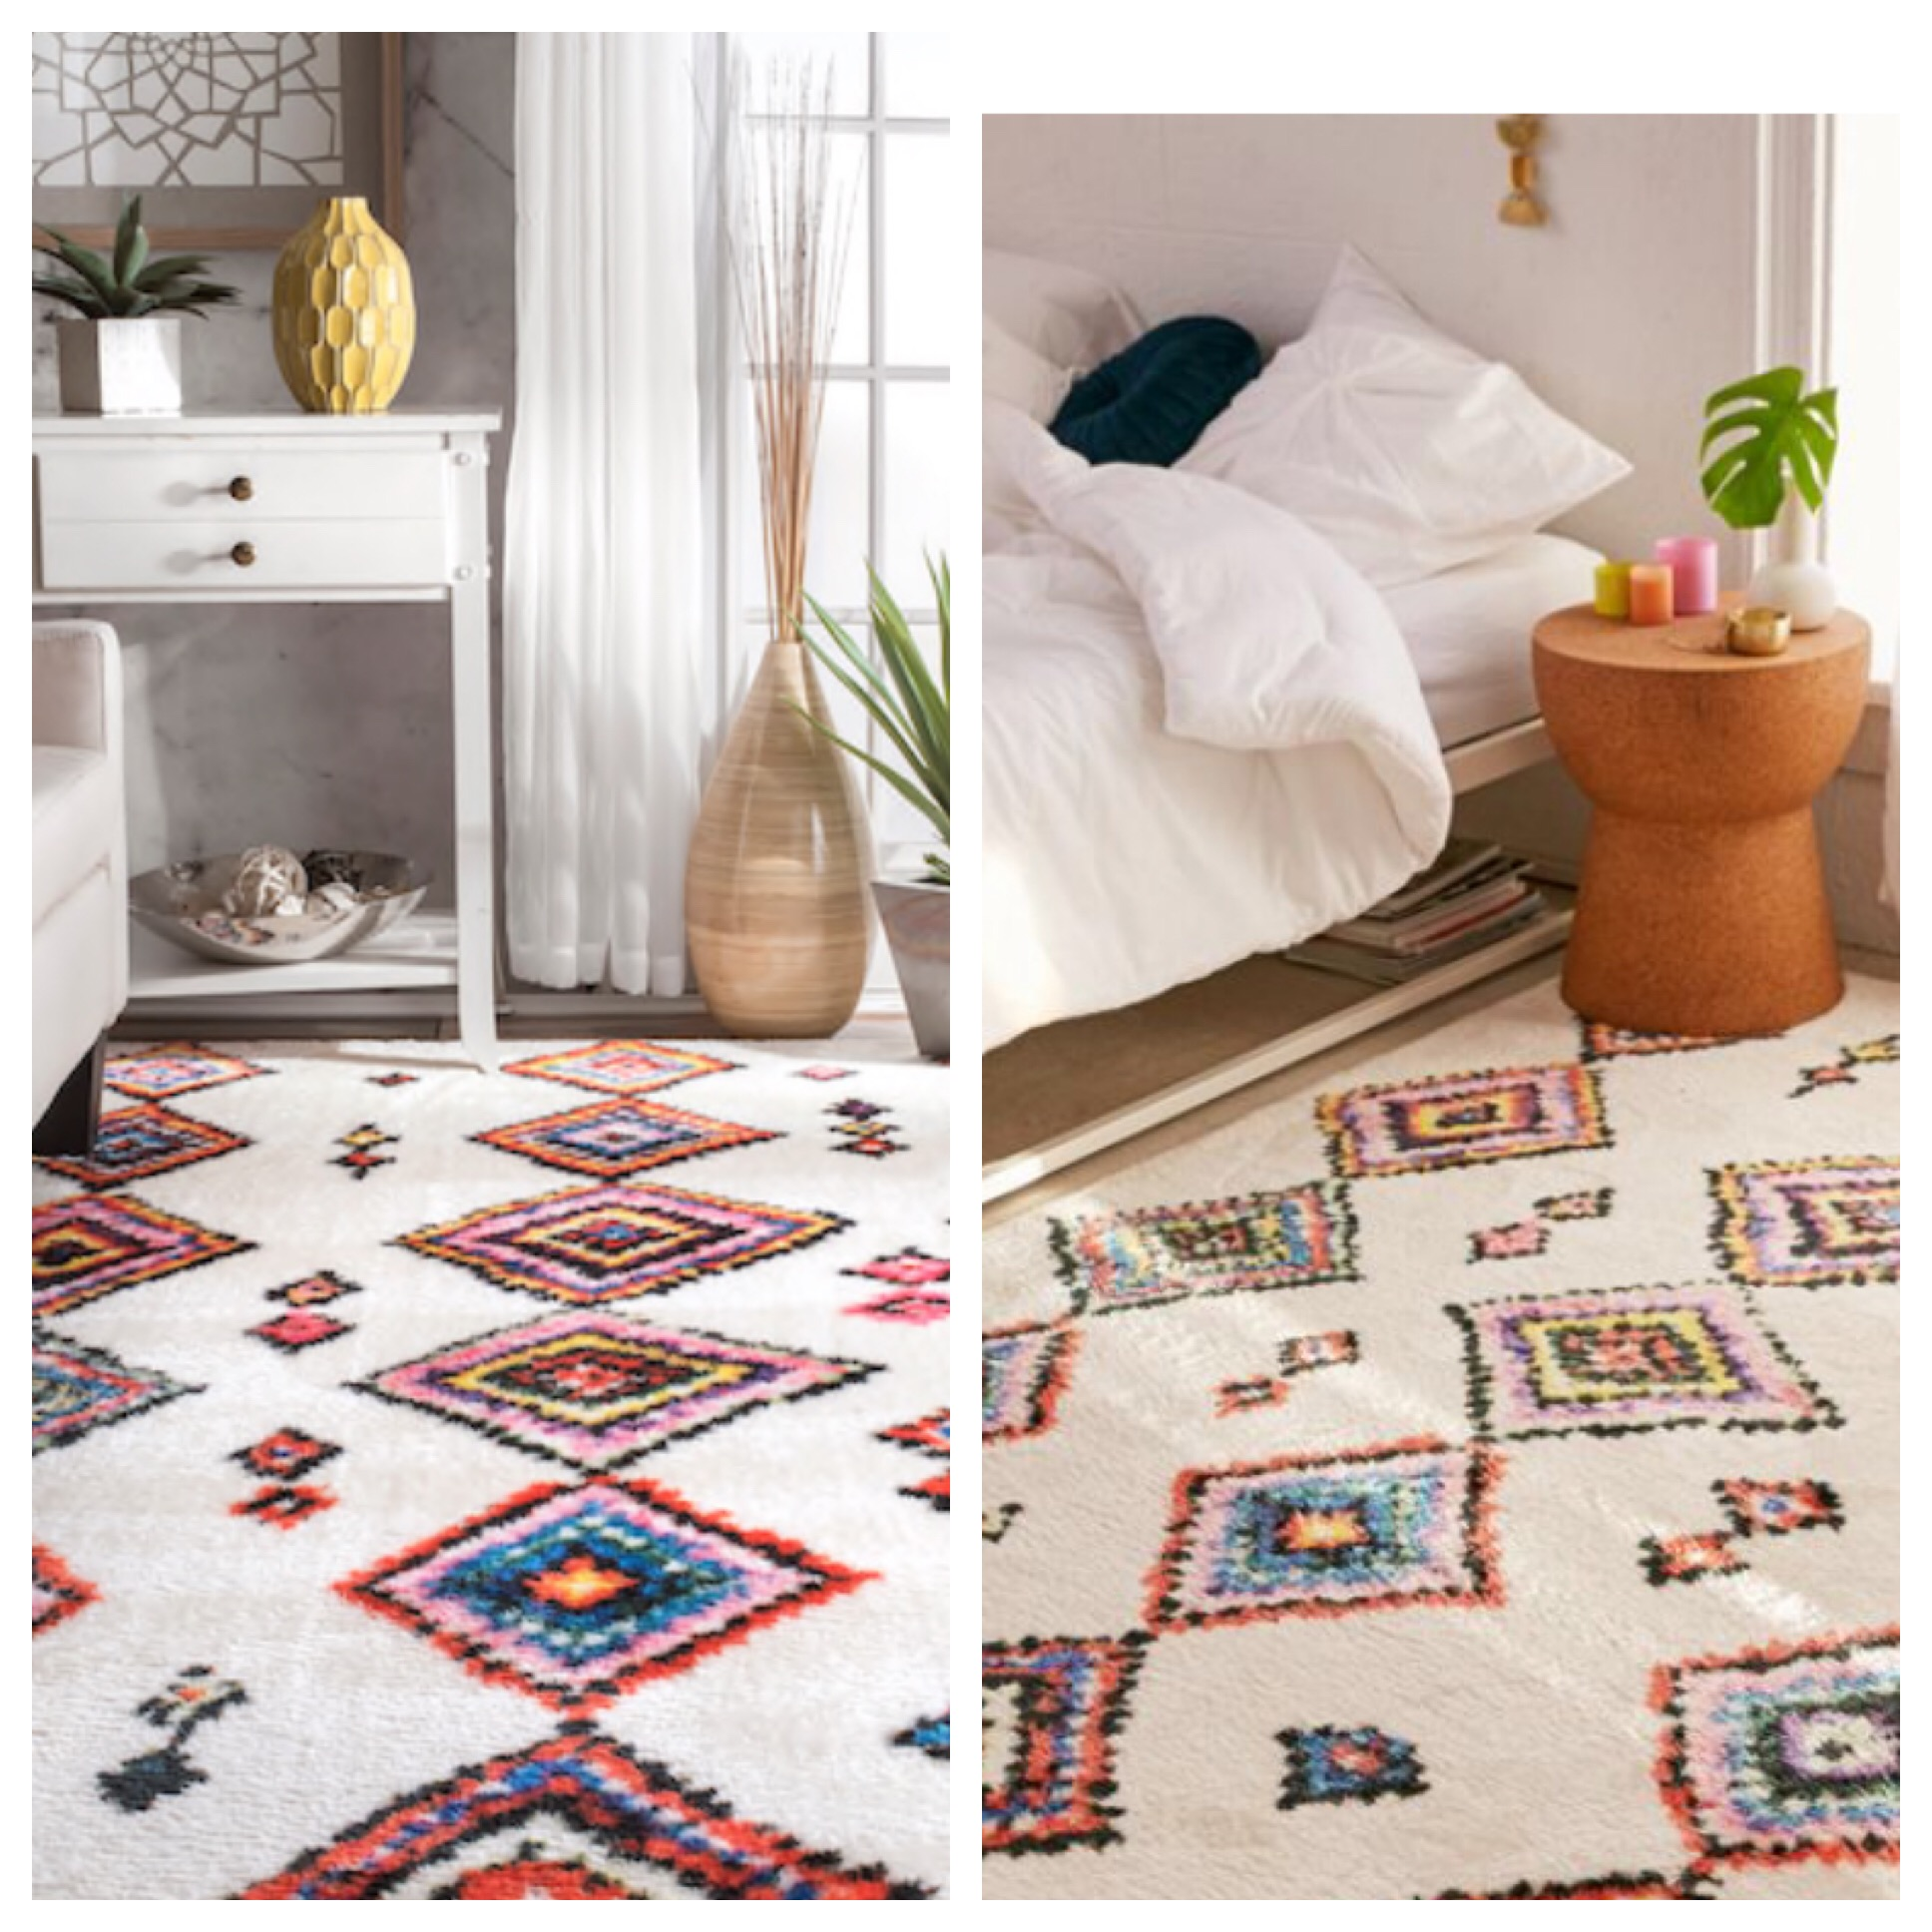 You can get the Cozy Rainbow Diamond Rug from Urban Outfitters for $489 OR you can get the Multi Soft Moroccan Aztec Watercolor area rug from RUGSUSA for $246. THEY ARE THE SAME RUG!!!!